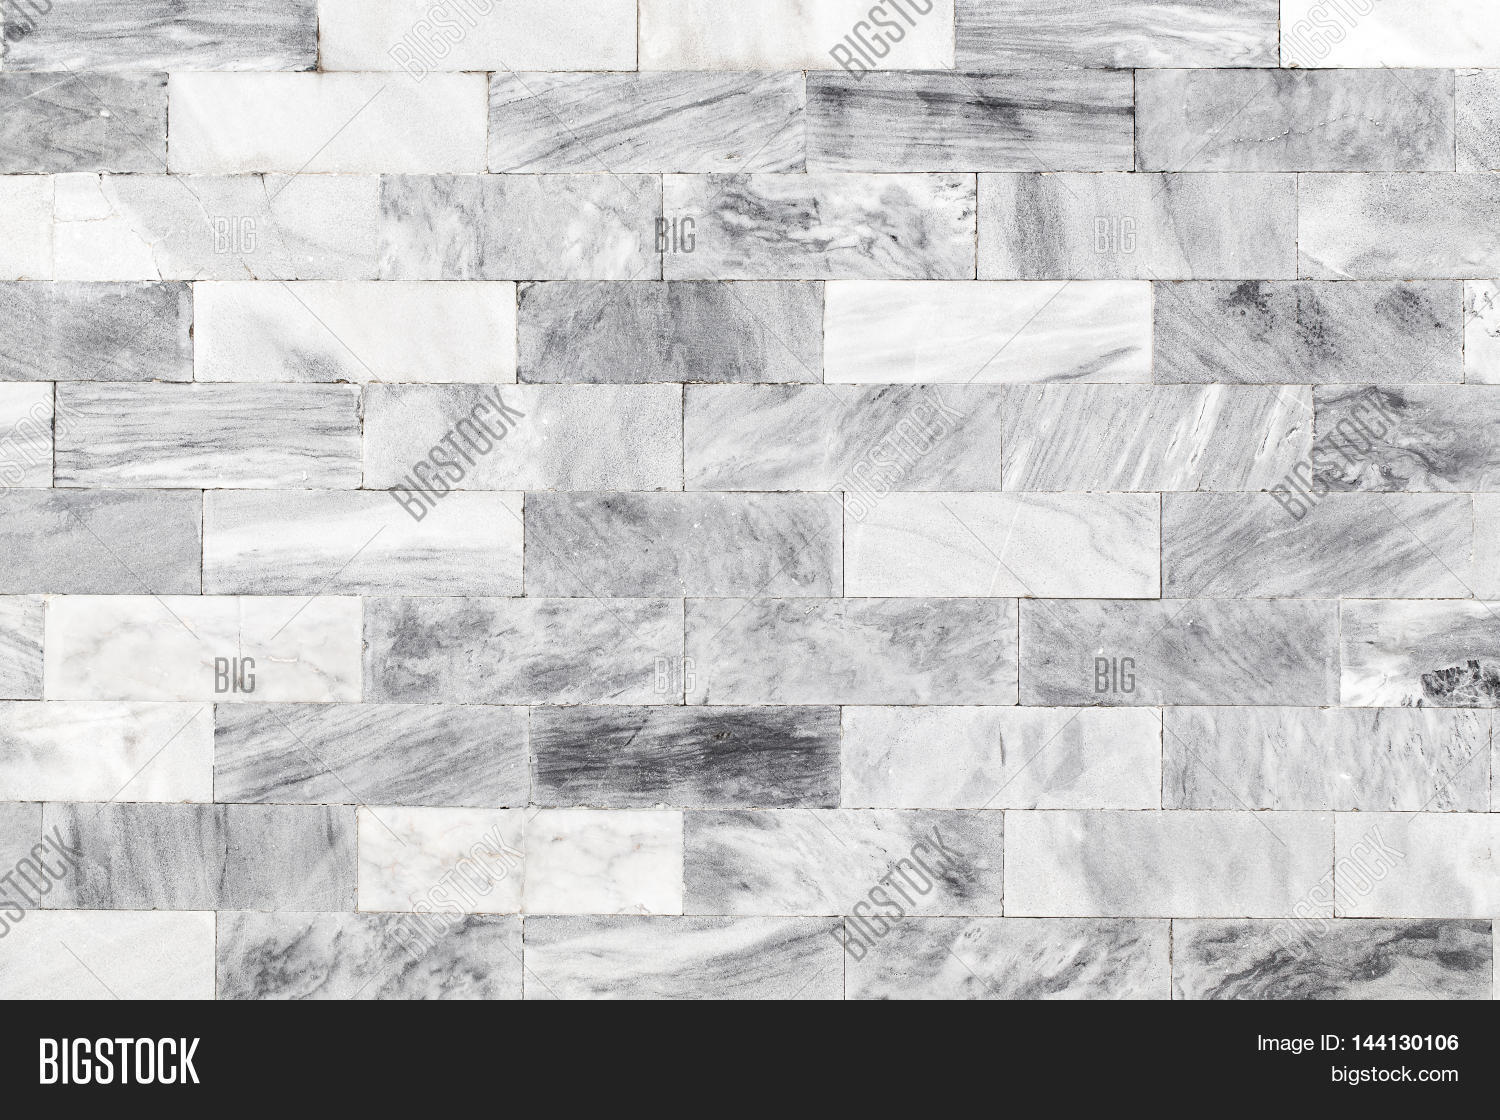 Natural Marble Black And White Patterned Texture